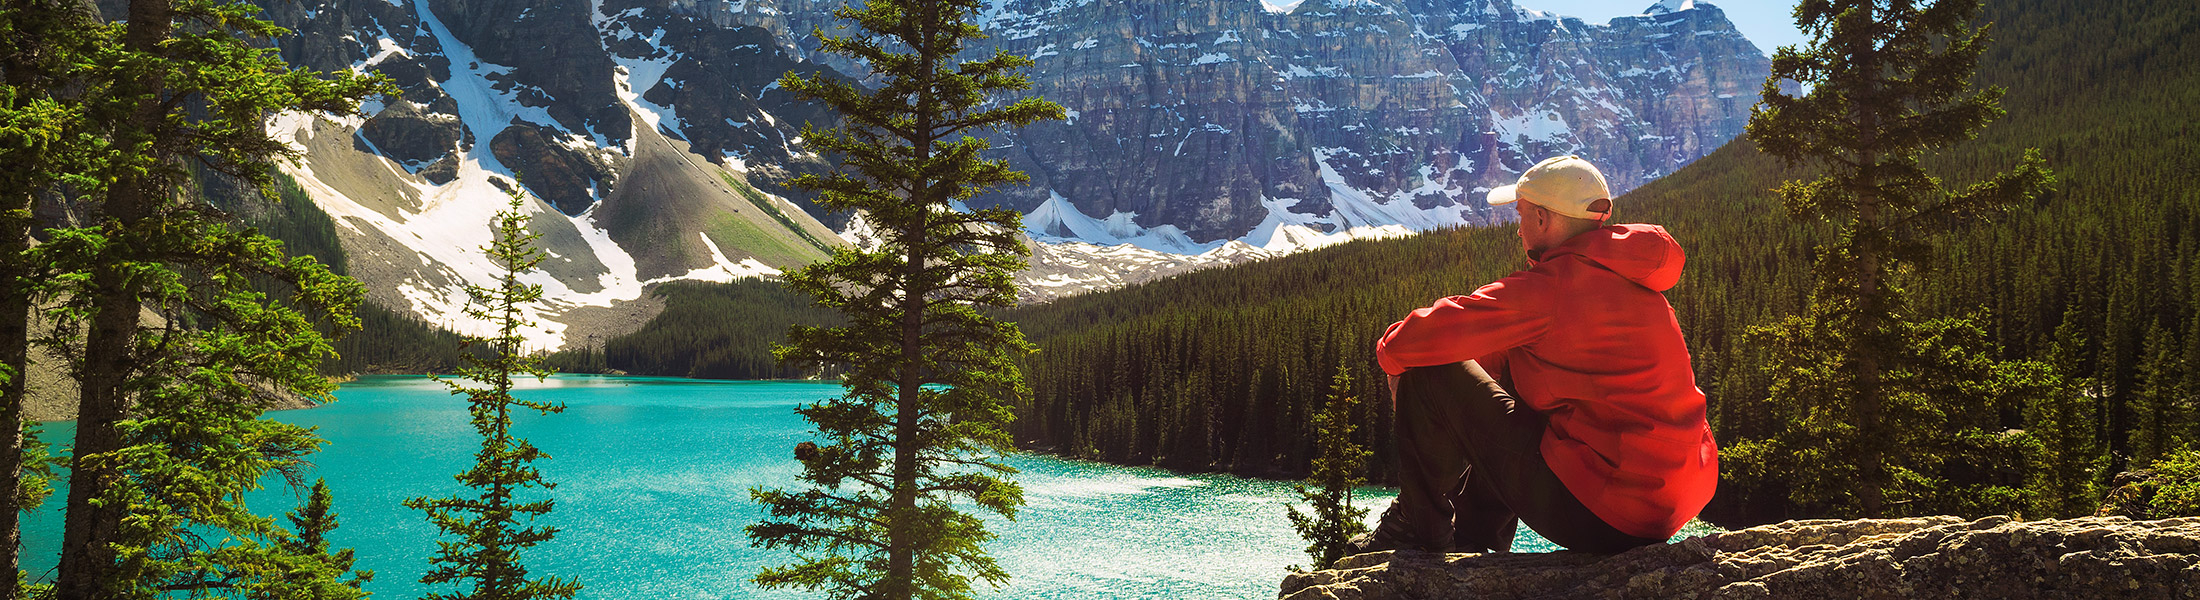 Hiker in Banff National Park in North America